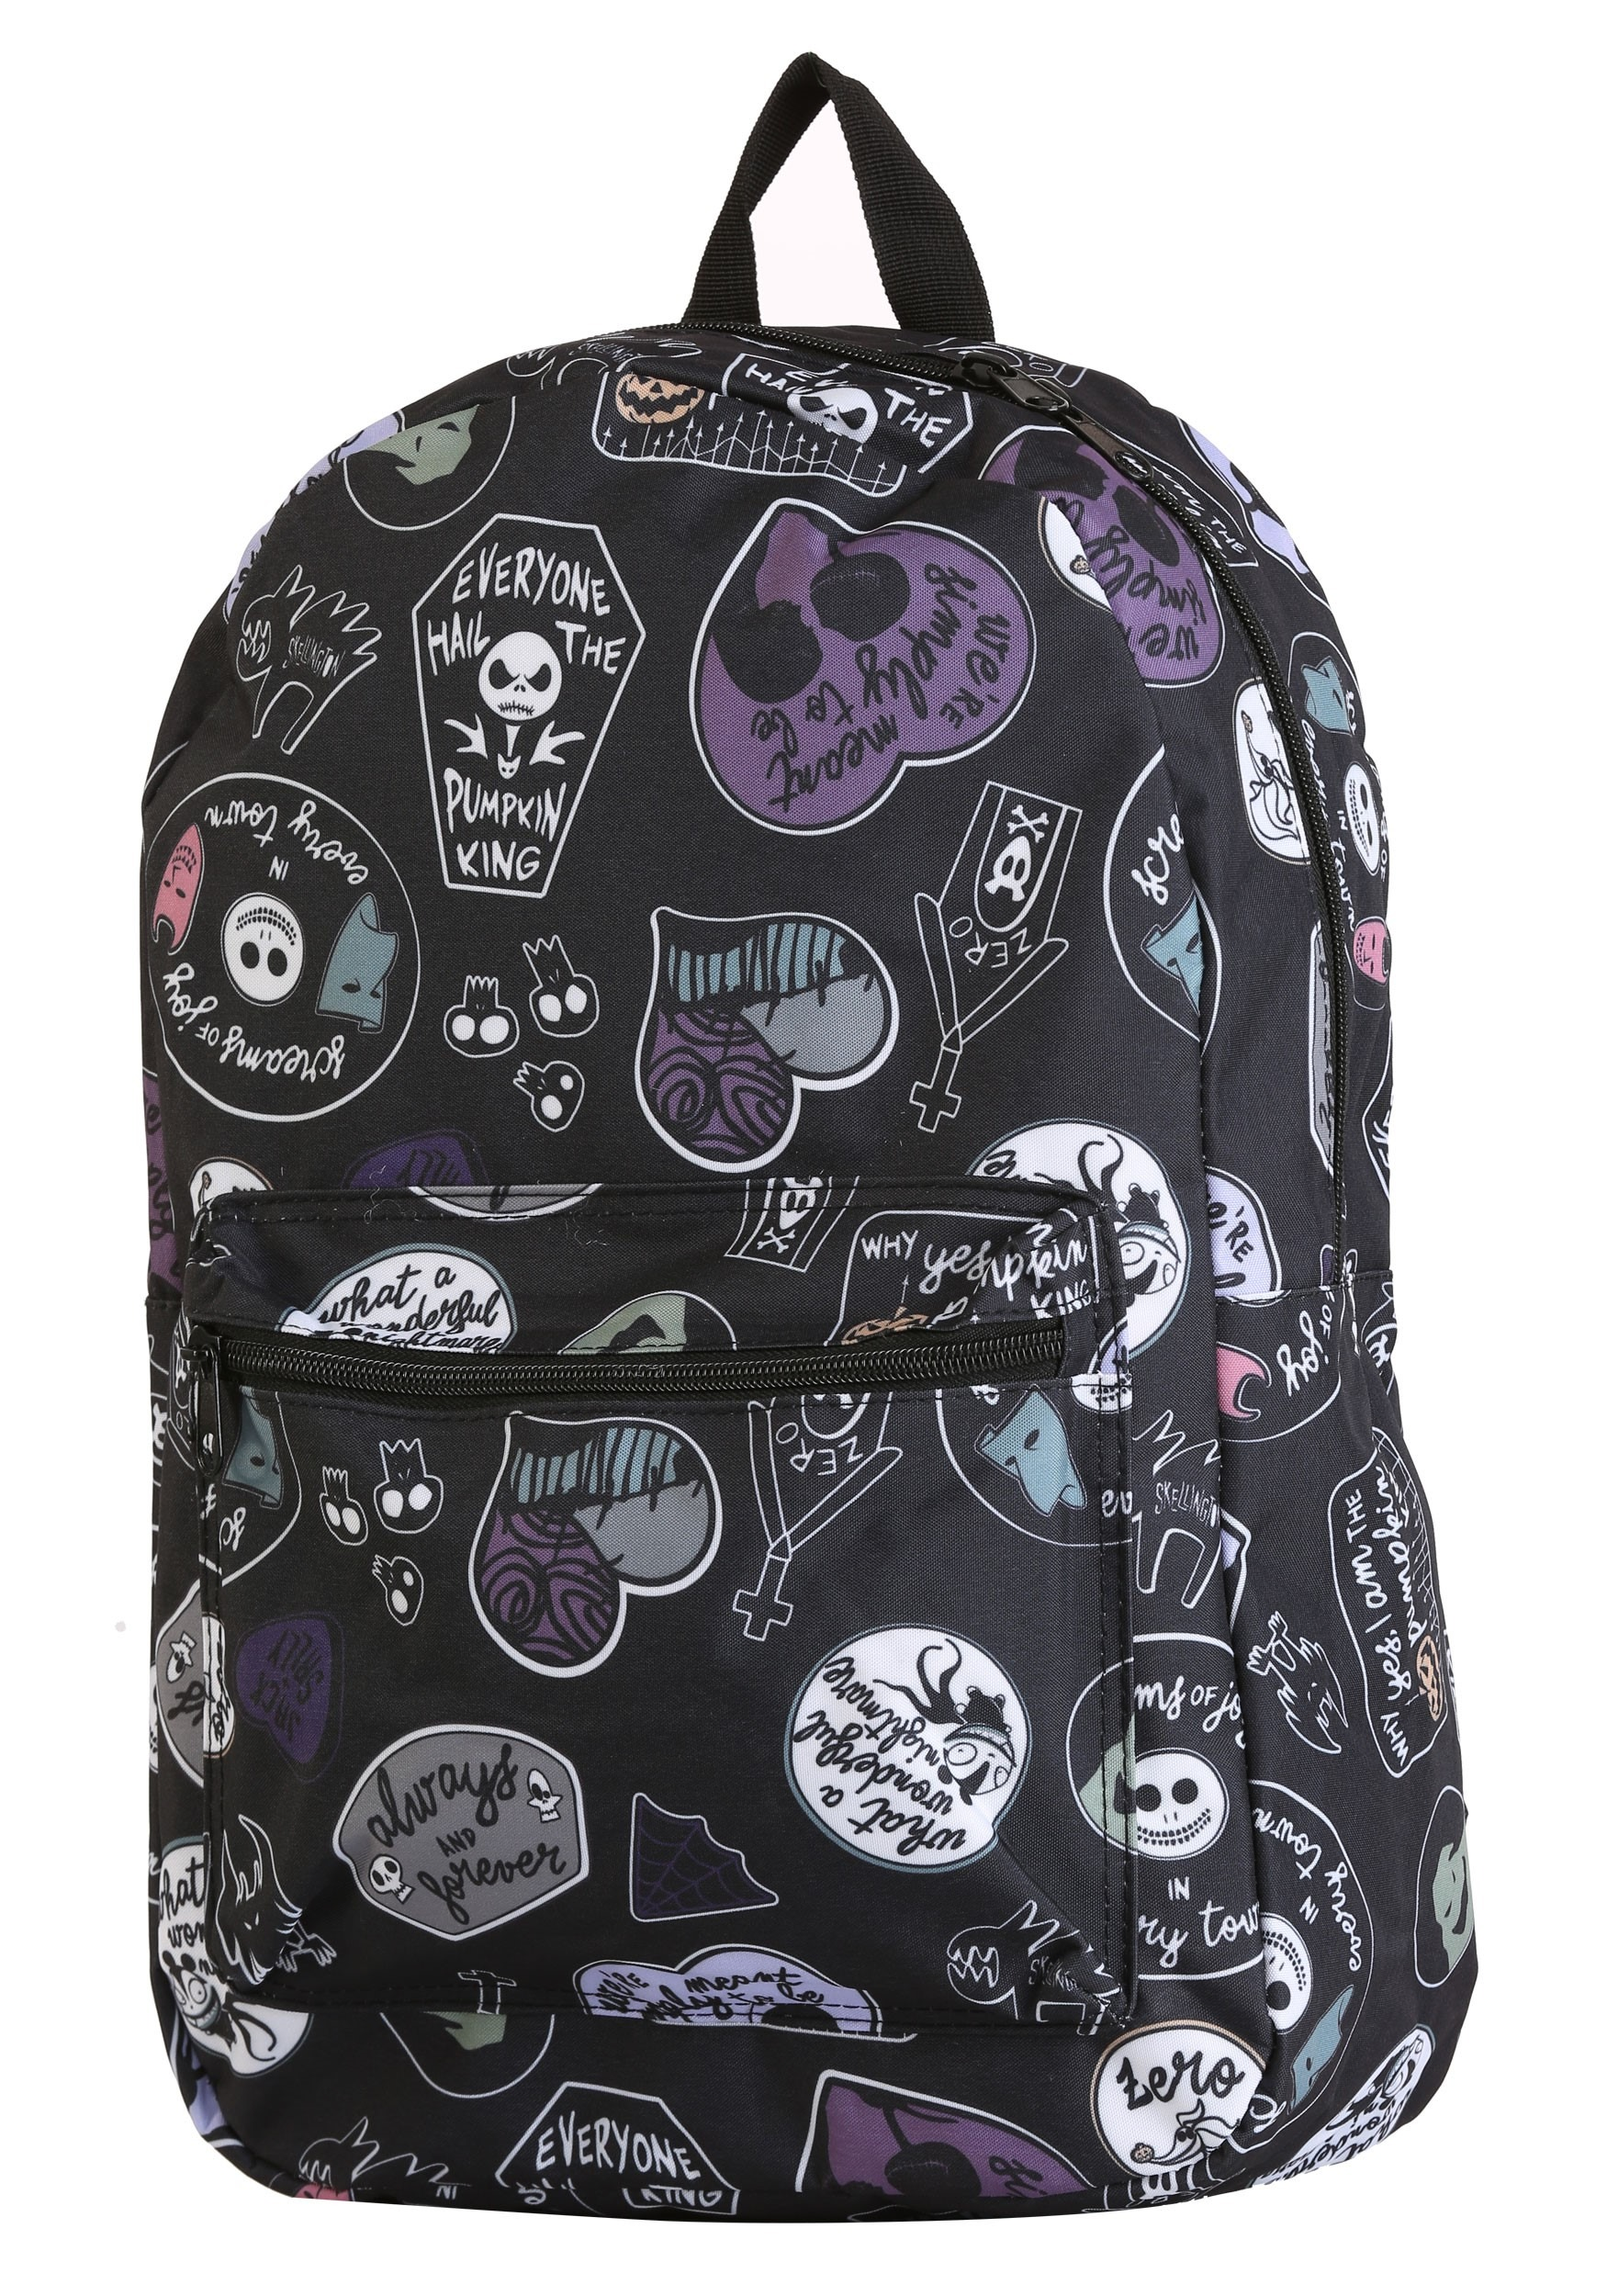 Nightmare Before Christmas All Over Print Backpack Bag